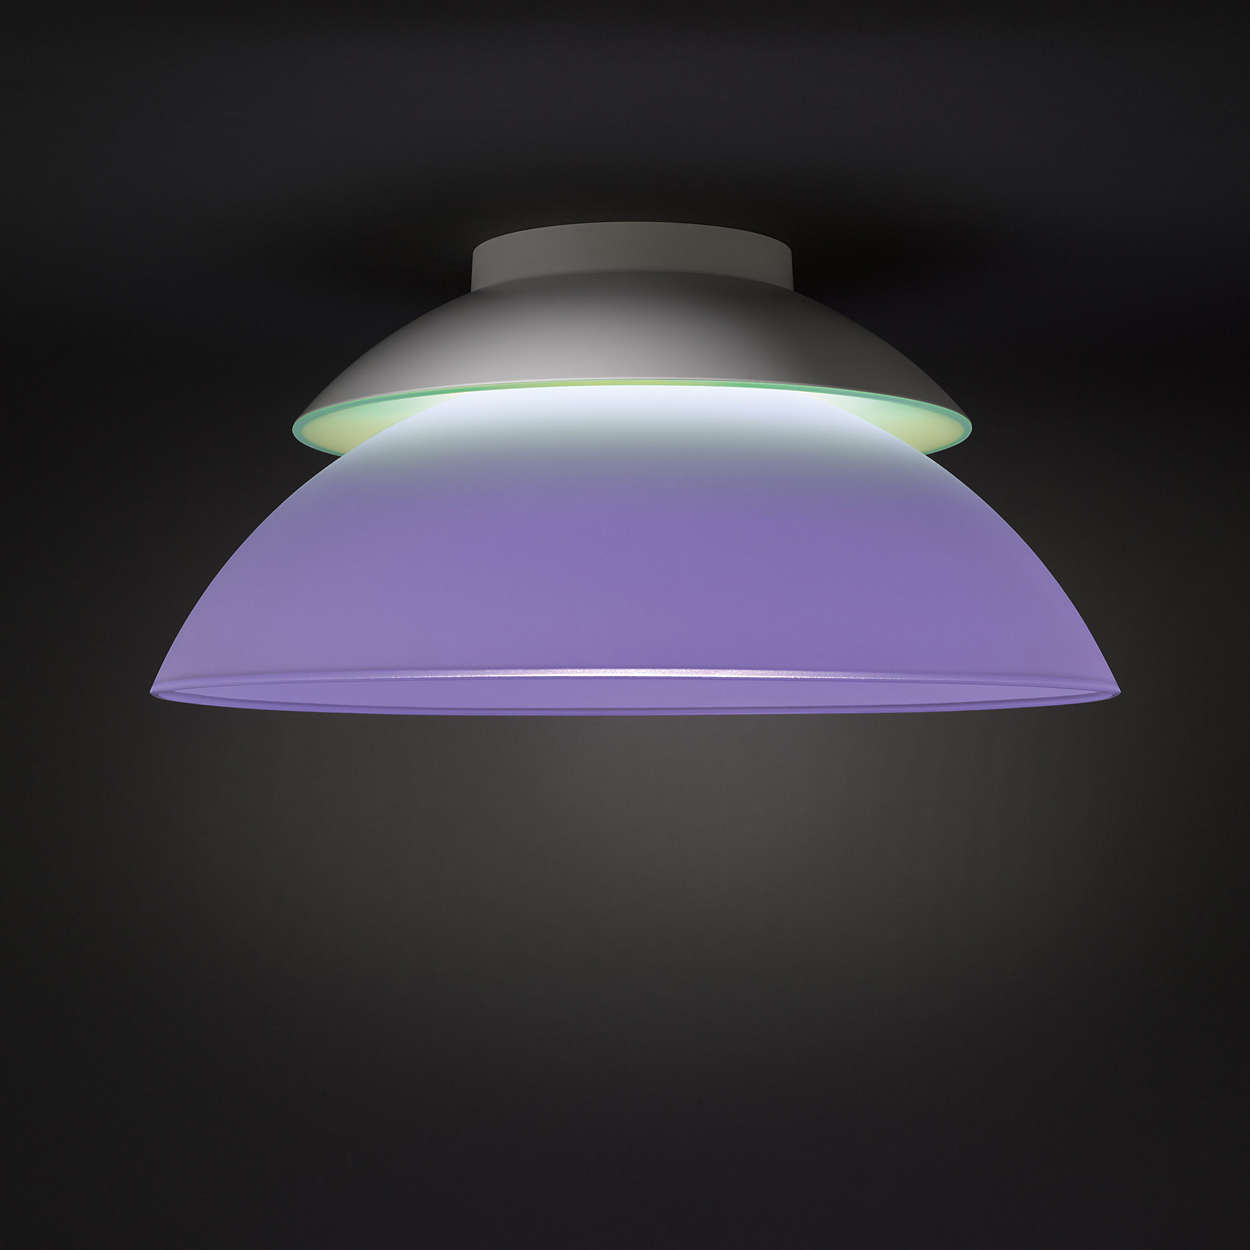 Hue white and color ambiance beyond ceiling light 7120131ph philips limitless possibilities aloadofball Gallery